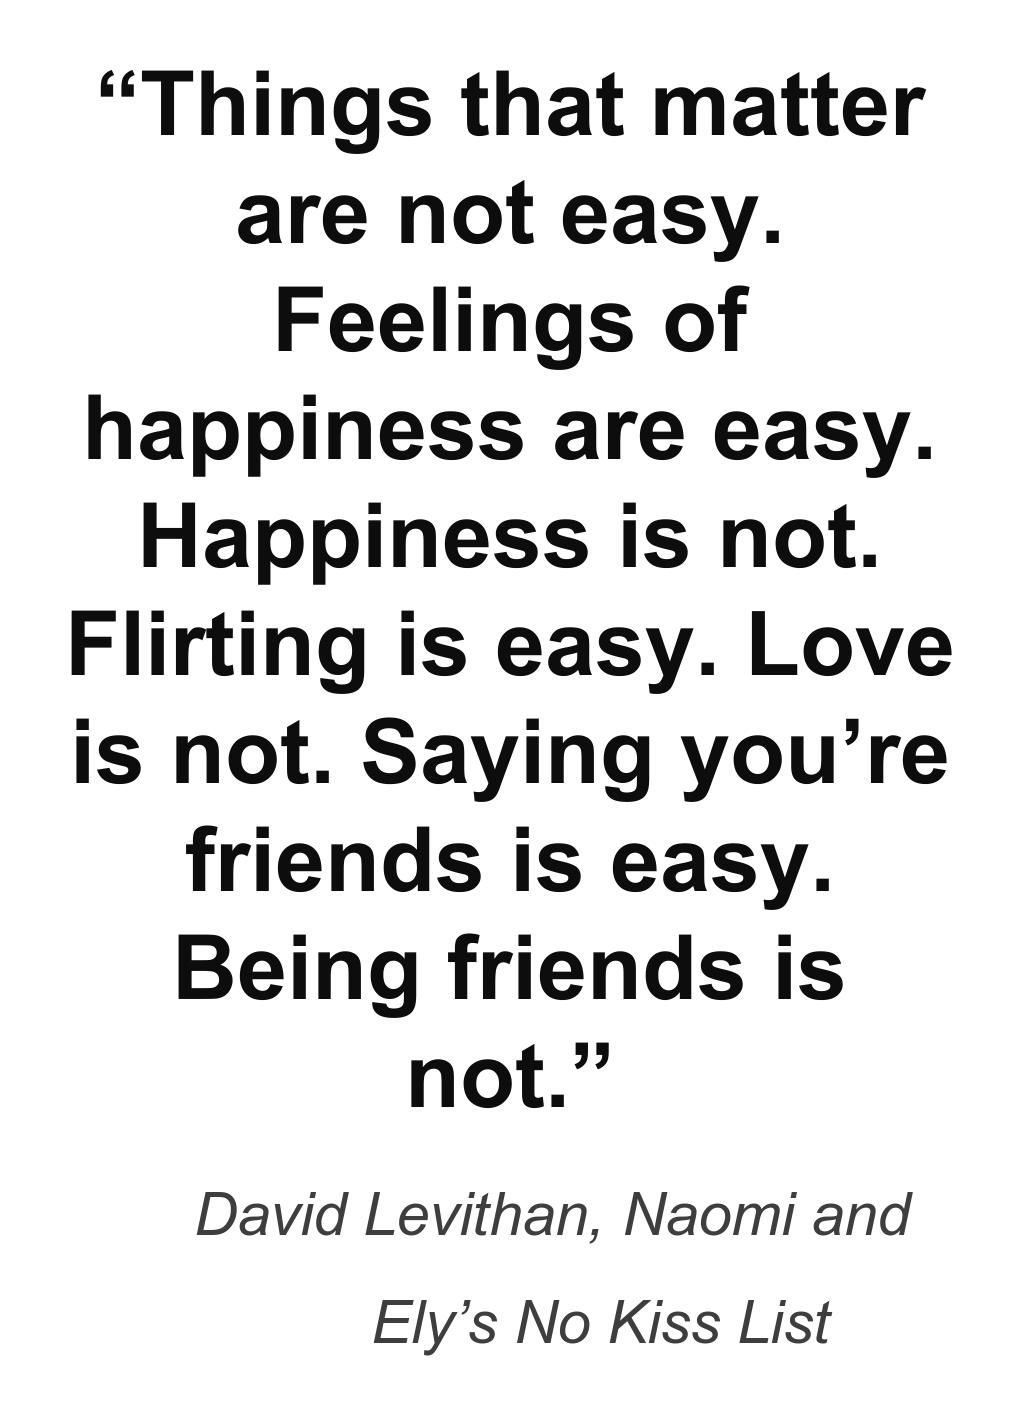 List Of Quotes Things That Matter Are Not Easy  David Levithan Naomi And Ely's No